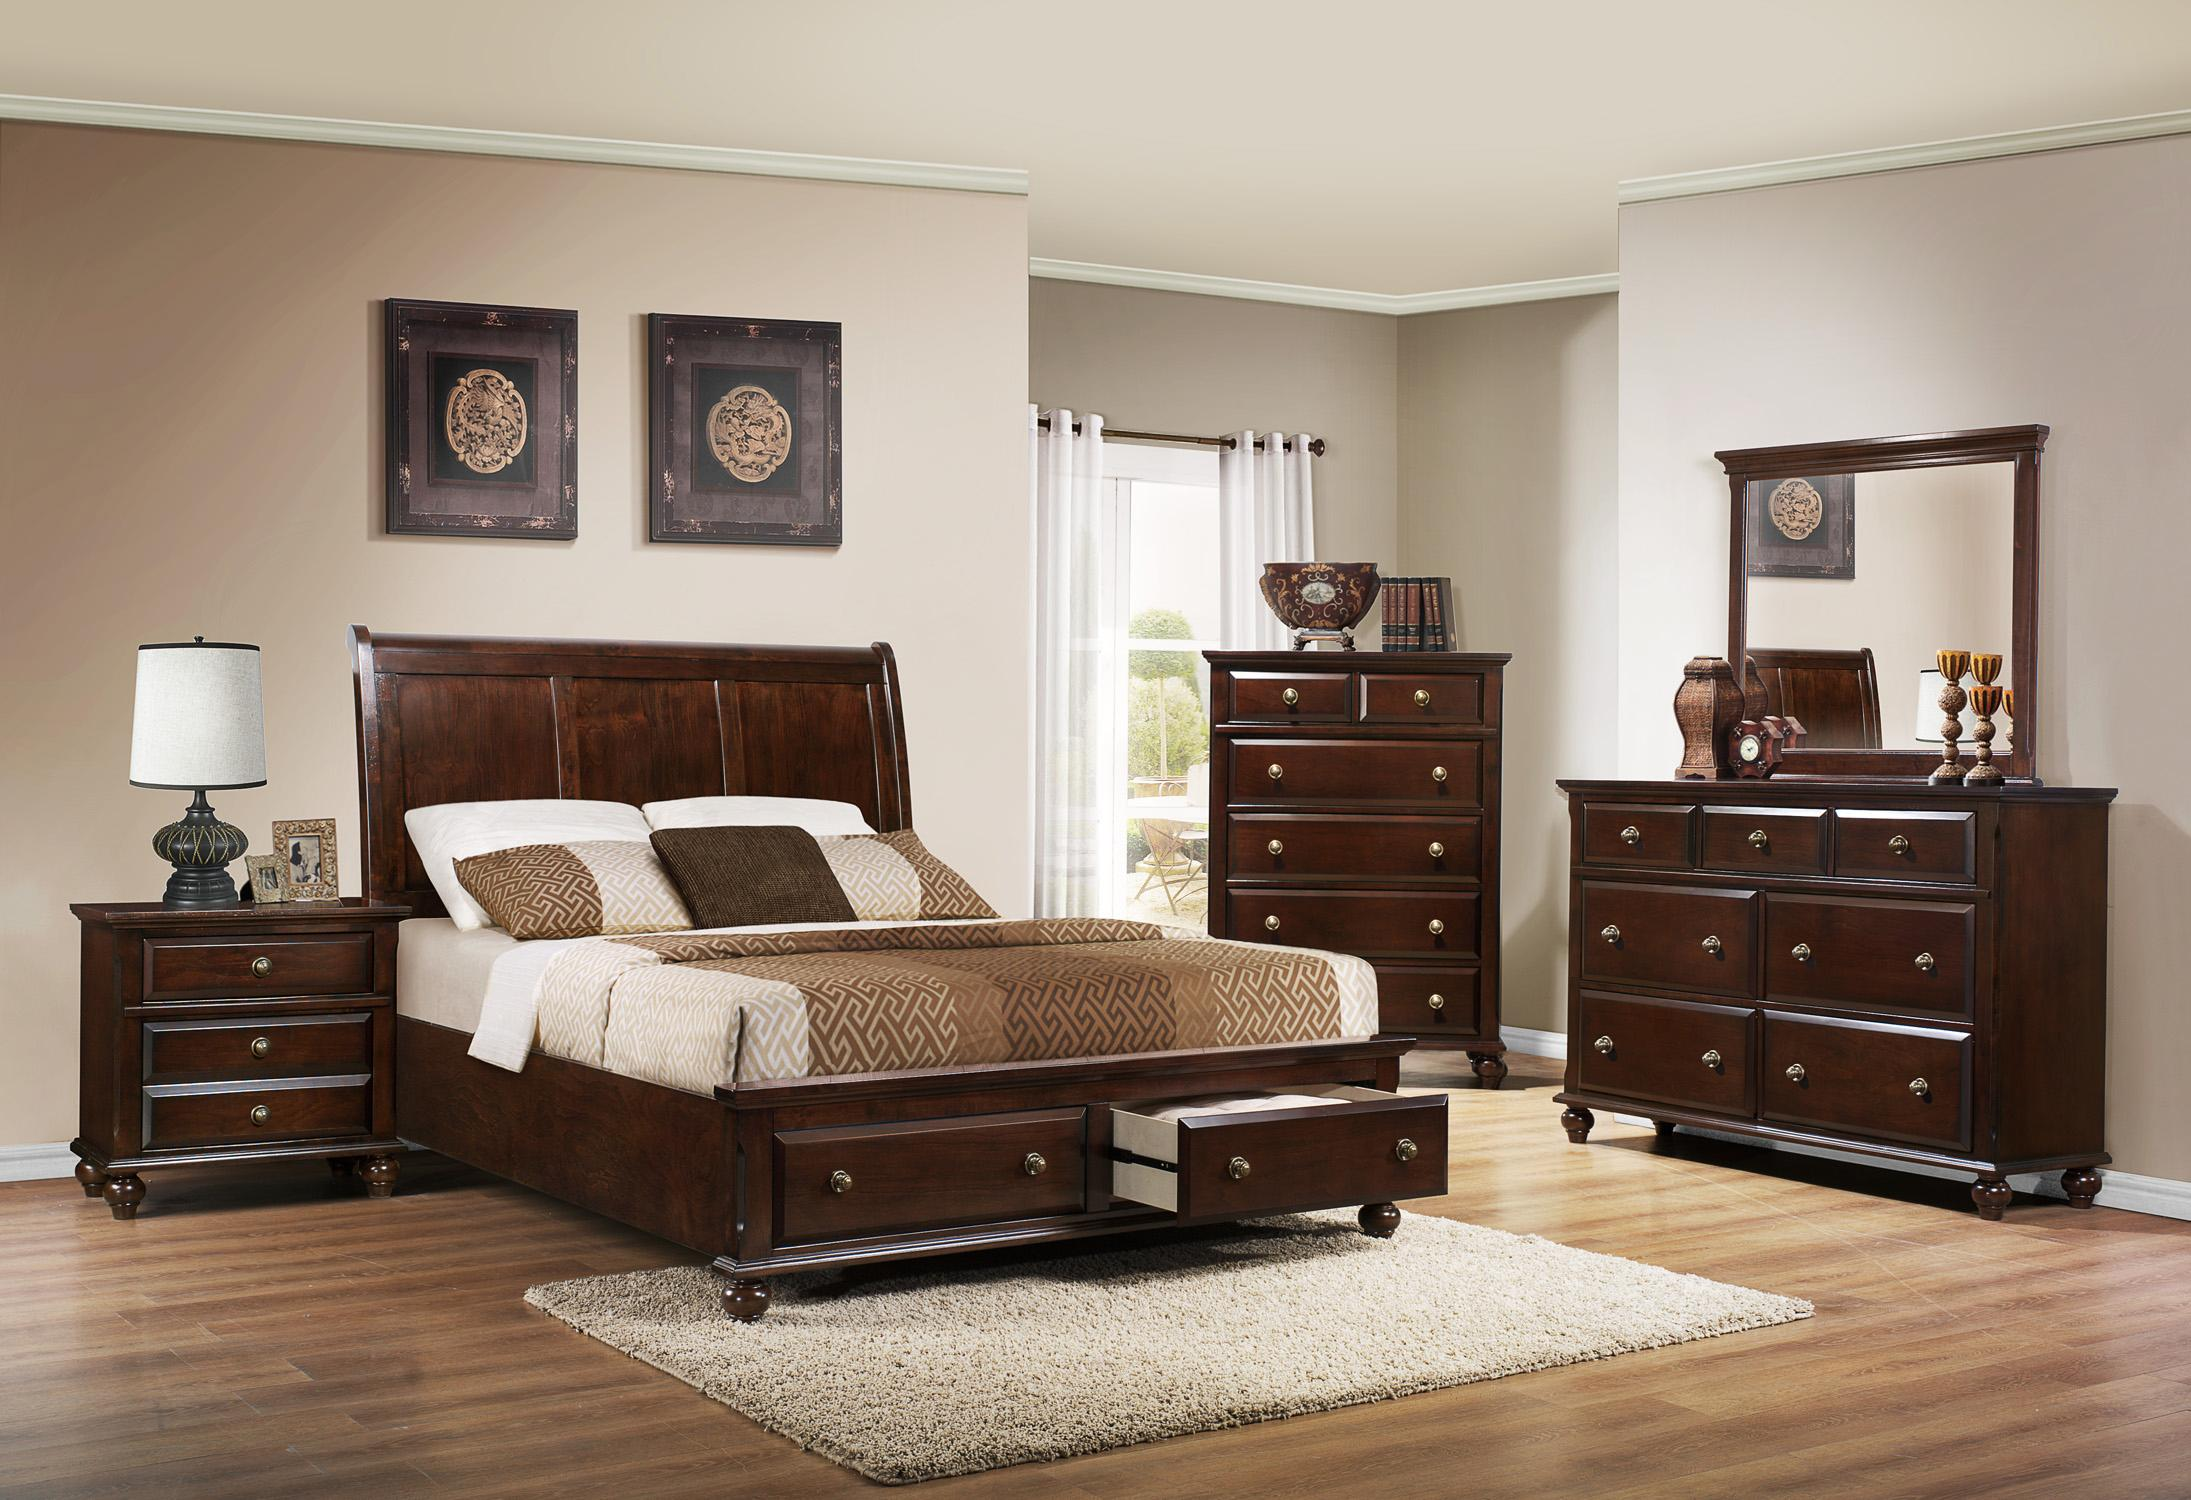 Crown Mark Portsmouth B6075 King Bedroom Group - Item Number: B6075 K Bedroom Group 1